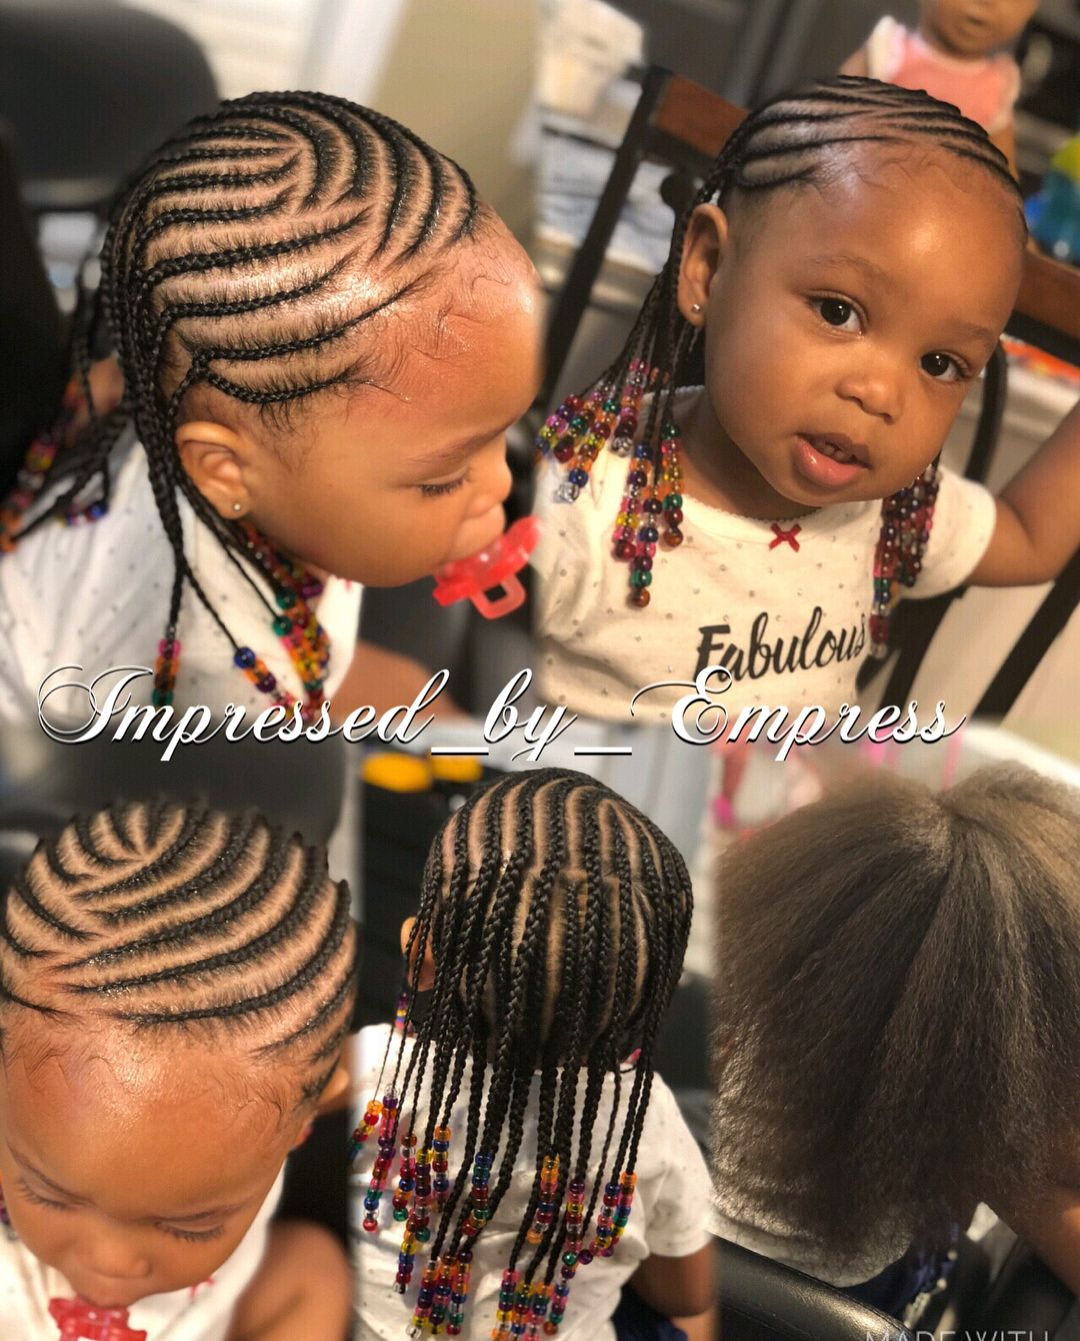 Chloe Her First Time Getting Her Hair Braided And That S All Her Hair Braids Braidstyles Kids Hairstyles Little Girl Braid Styles Braids For Kids